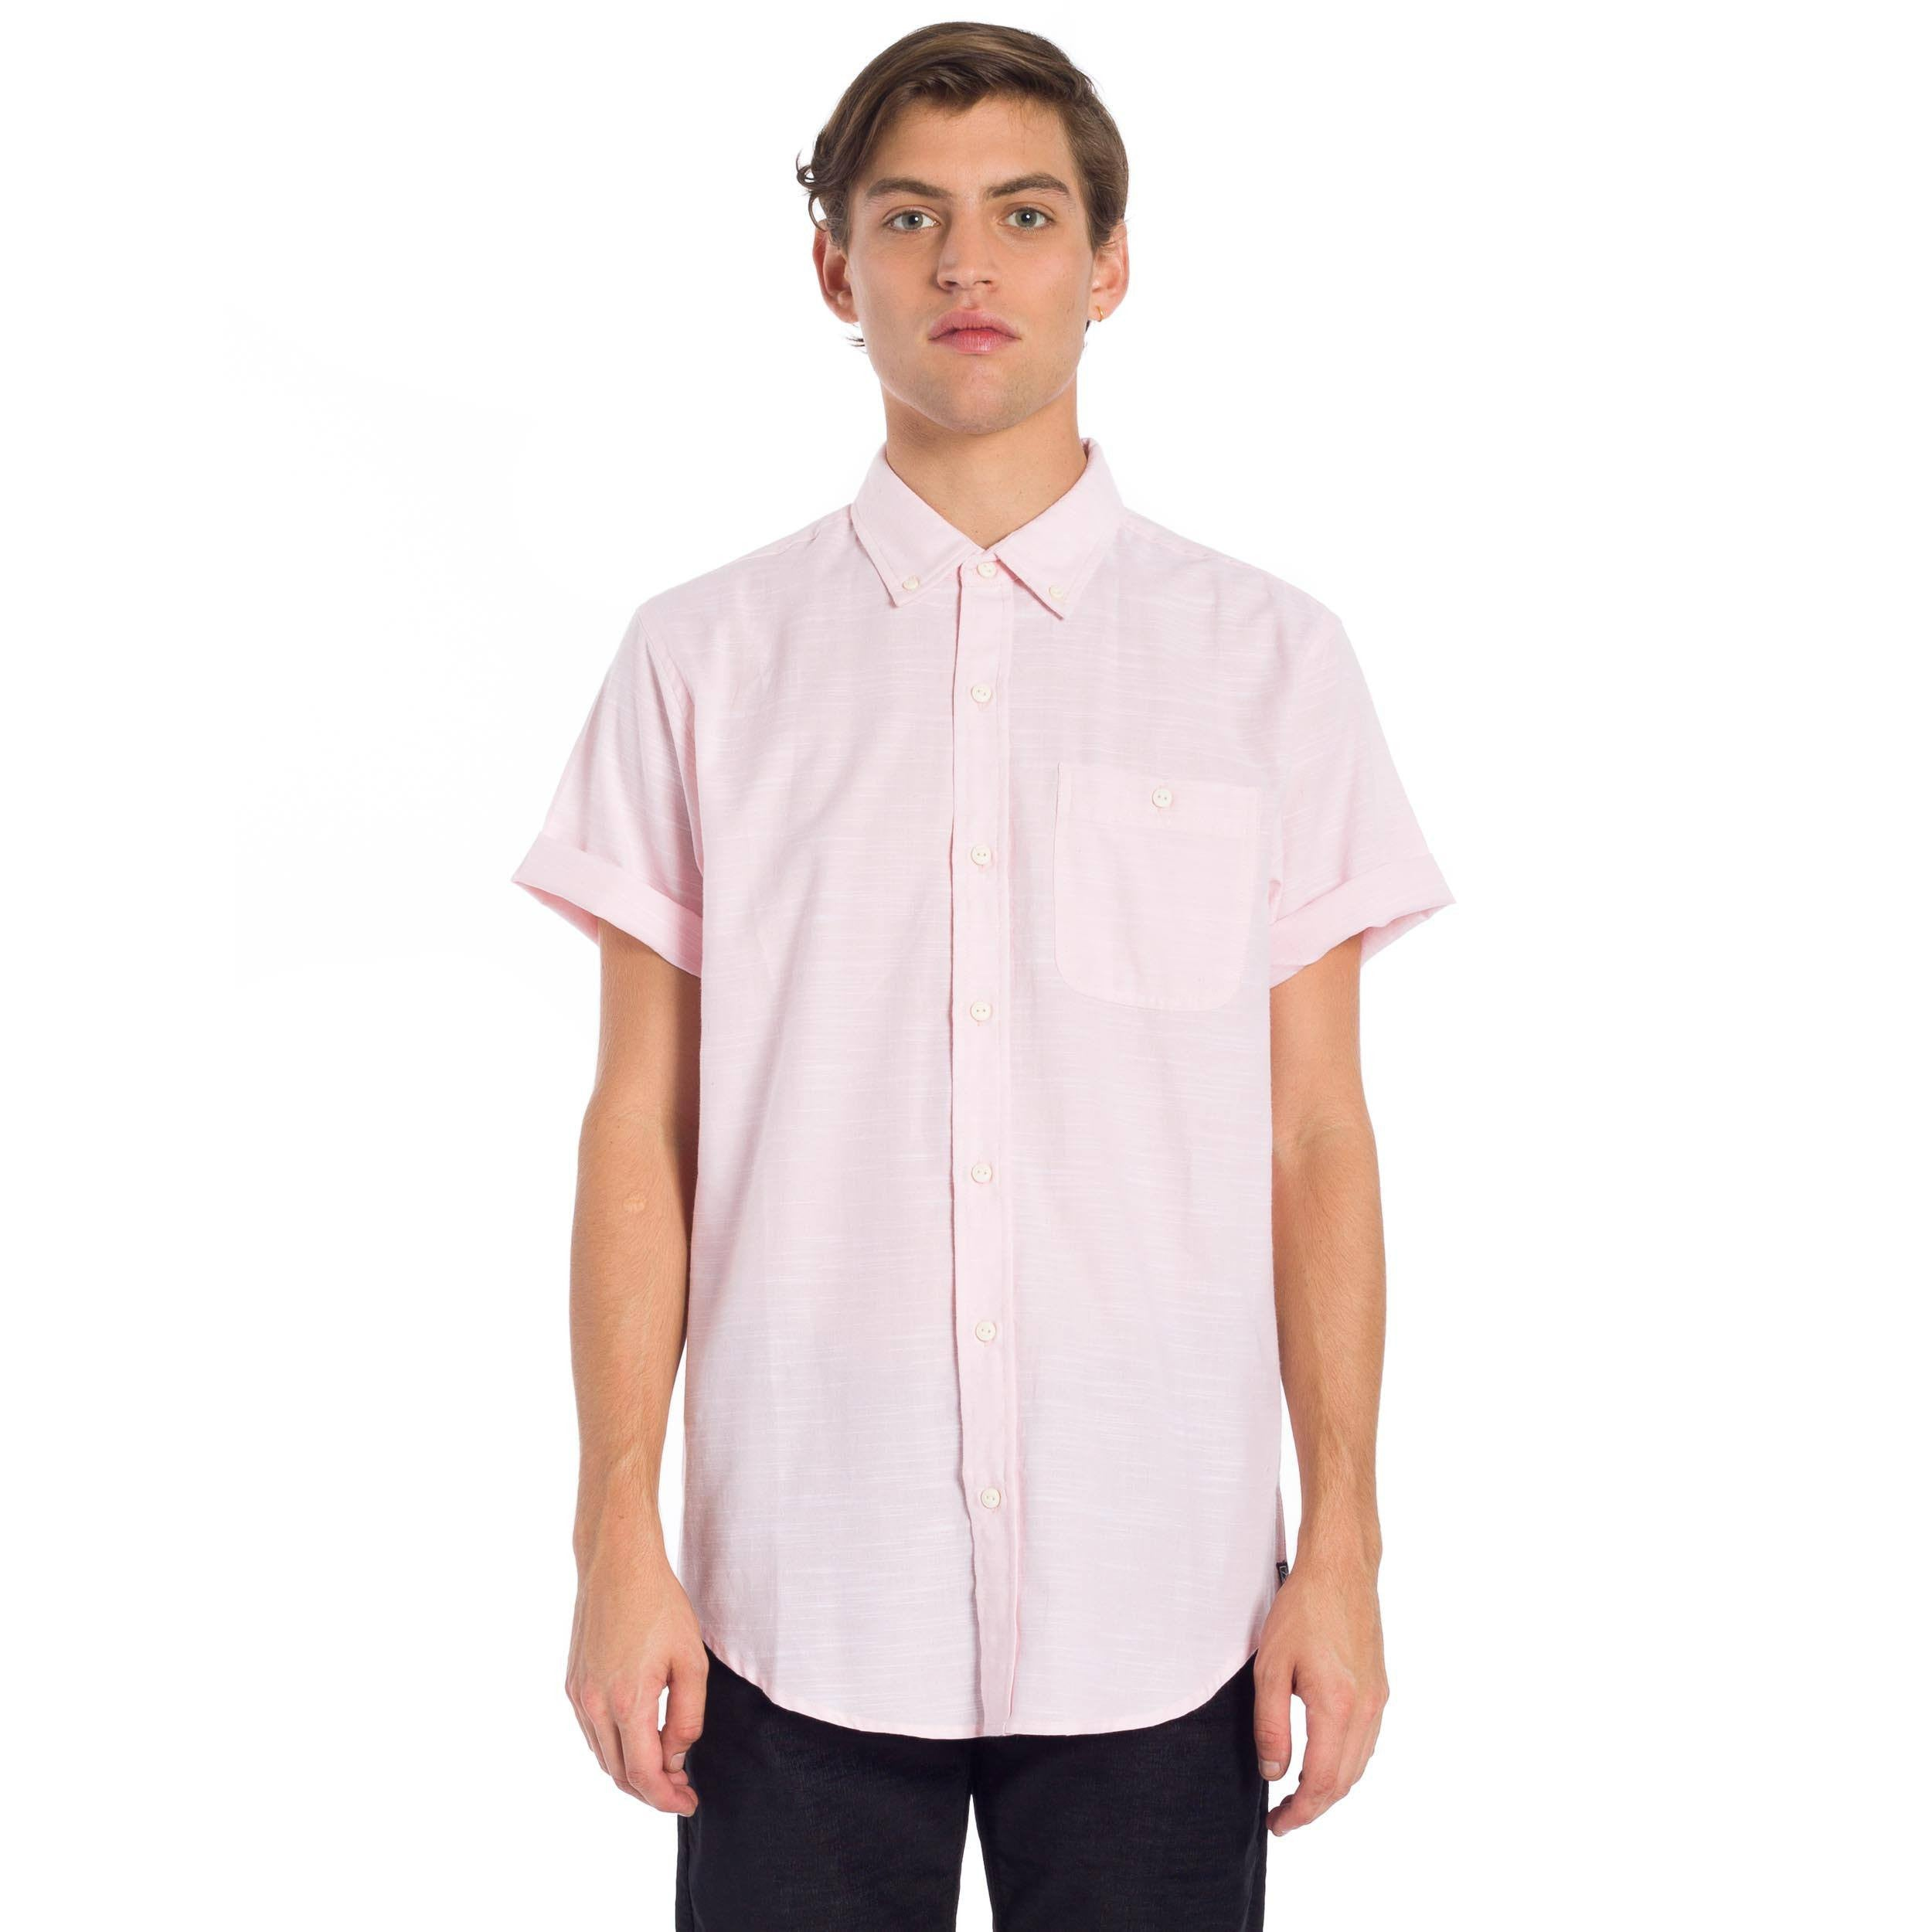 Costa Shirt - Light Pink